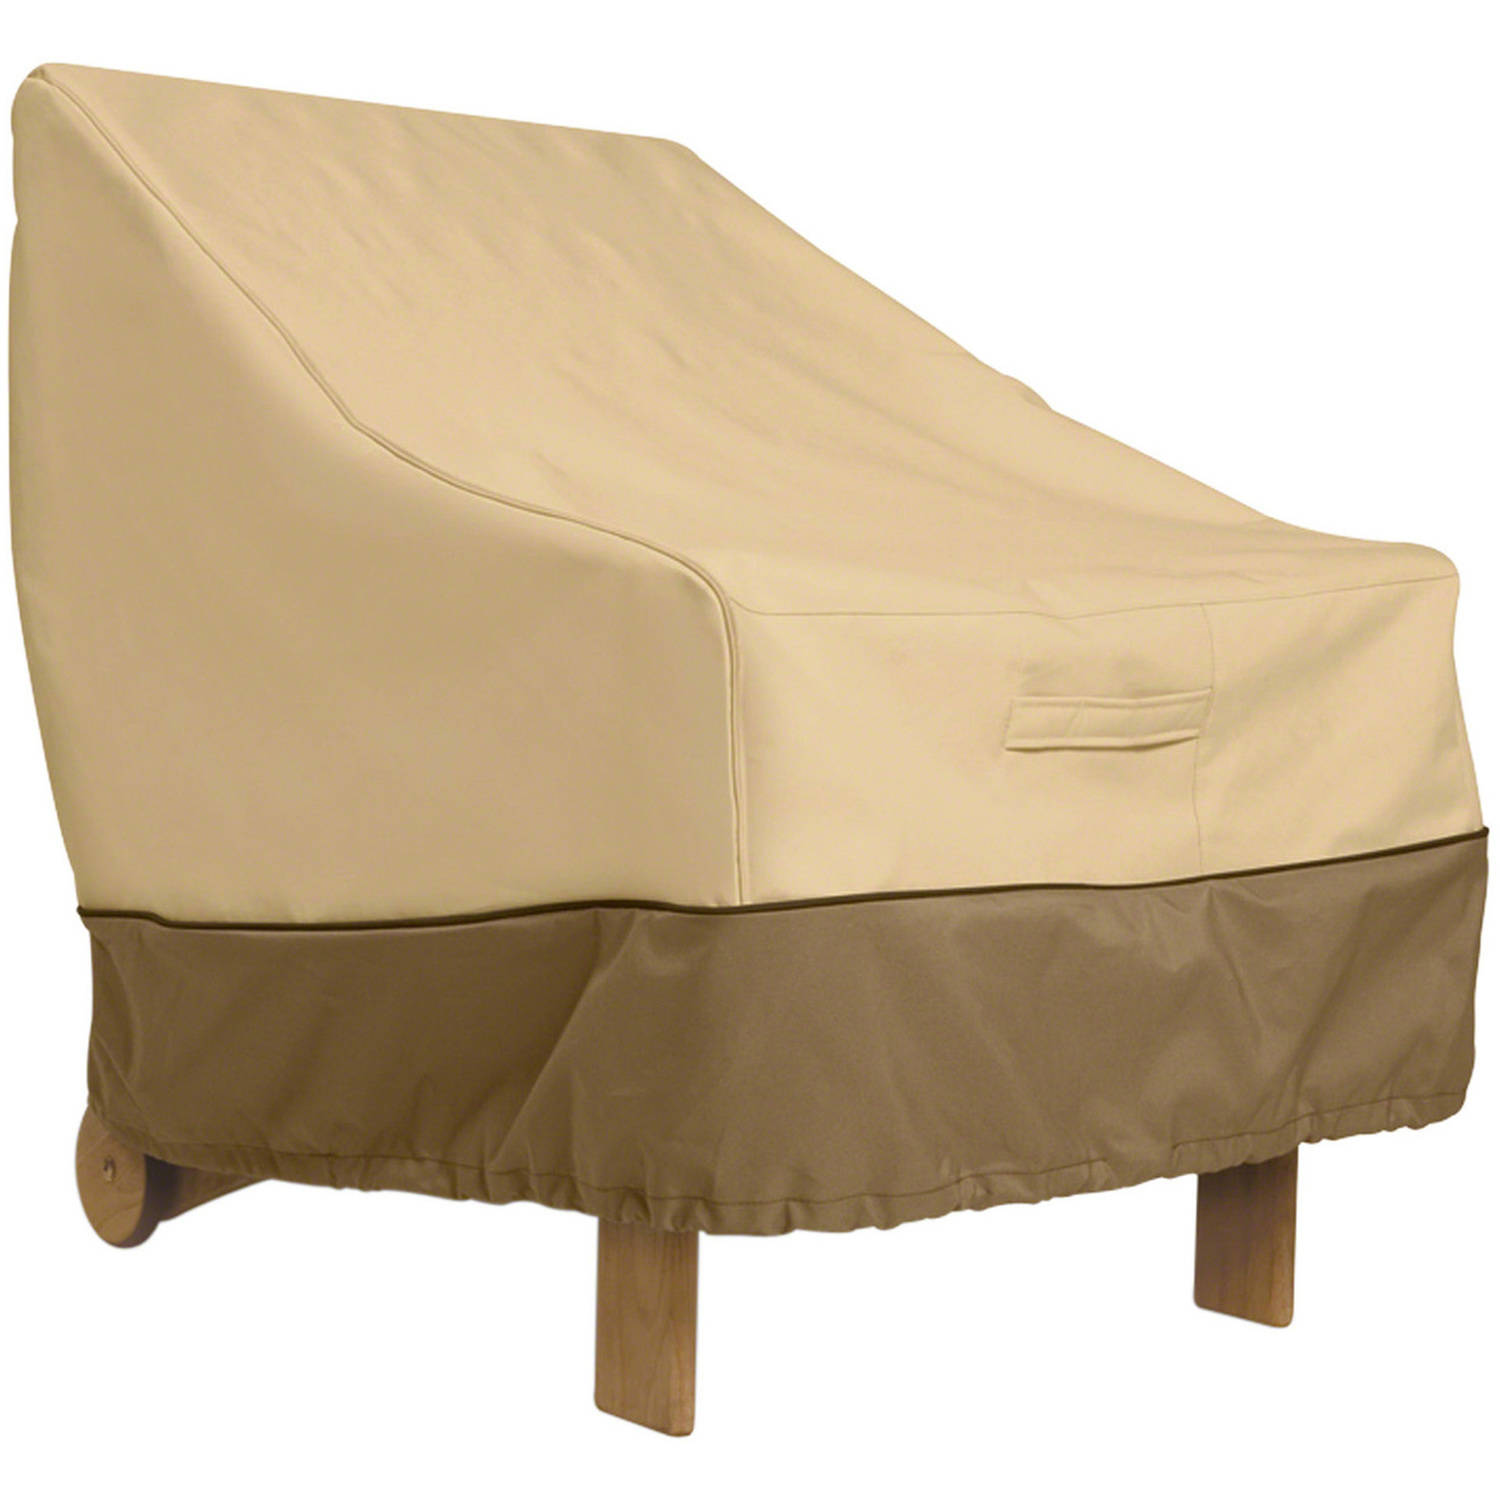 Classic Accessories Veranda Chair Furniture Storage Cover For Hampton Bay  Belleville C Spring Patio Chairs